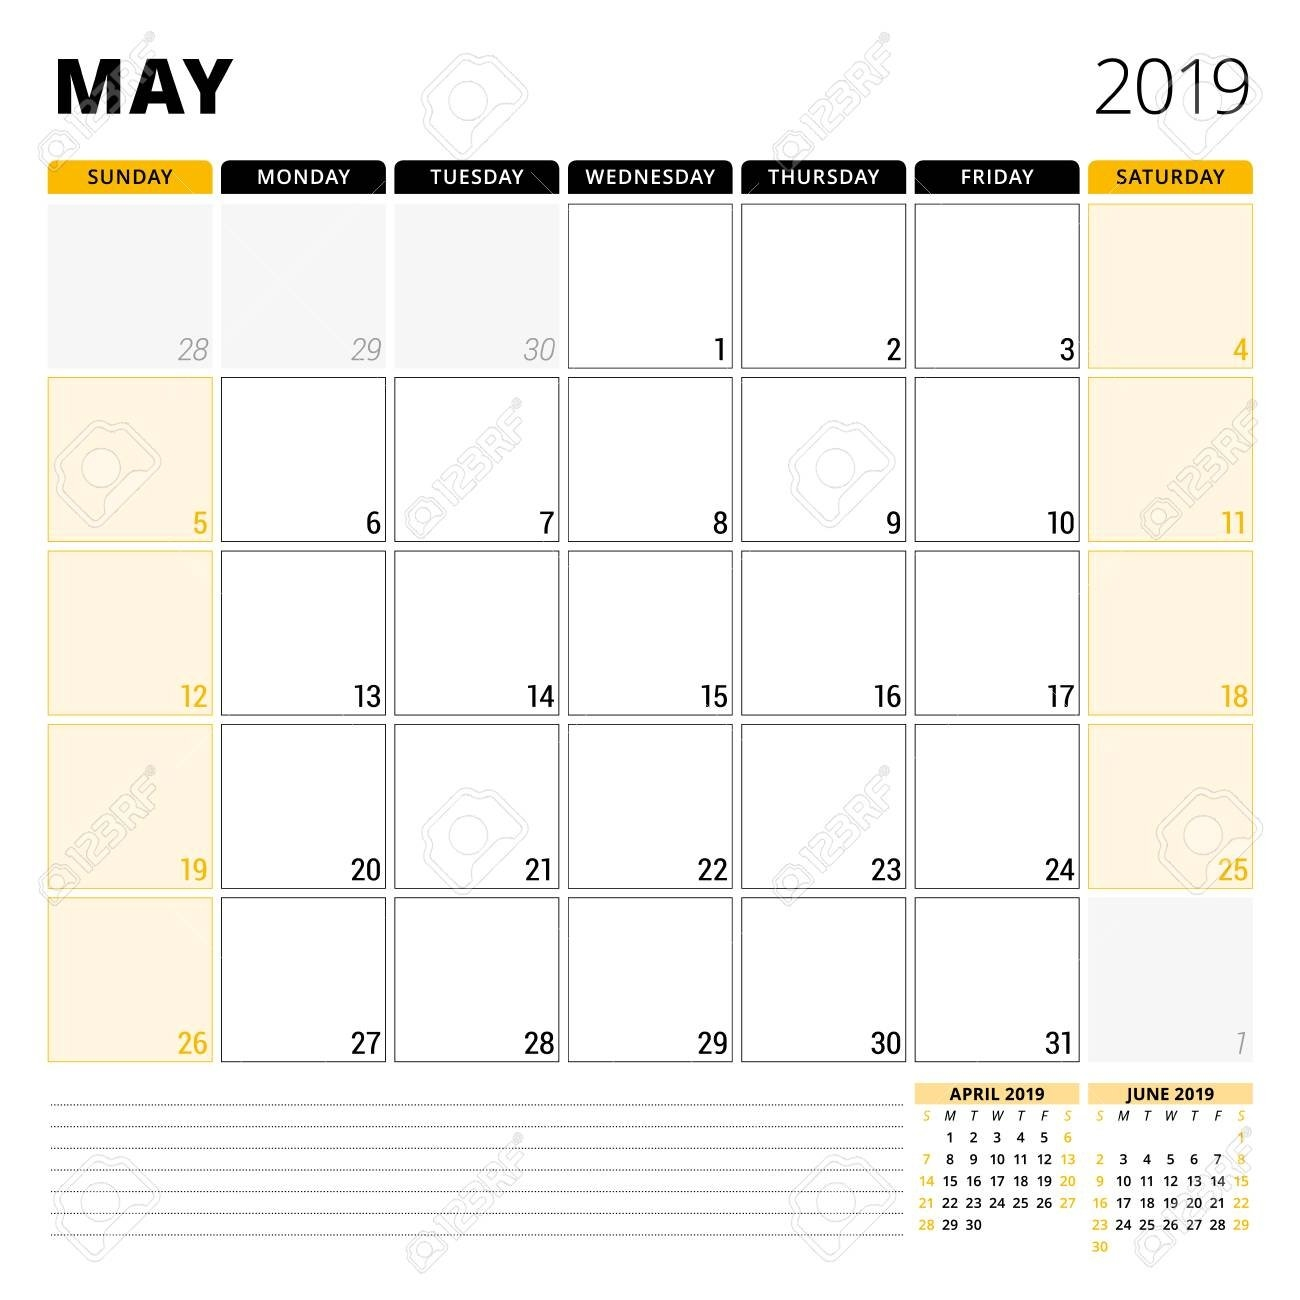 Calendar Planner For May 2019. Stationery Design Template. Week Calendar May 3 2019